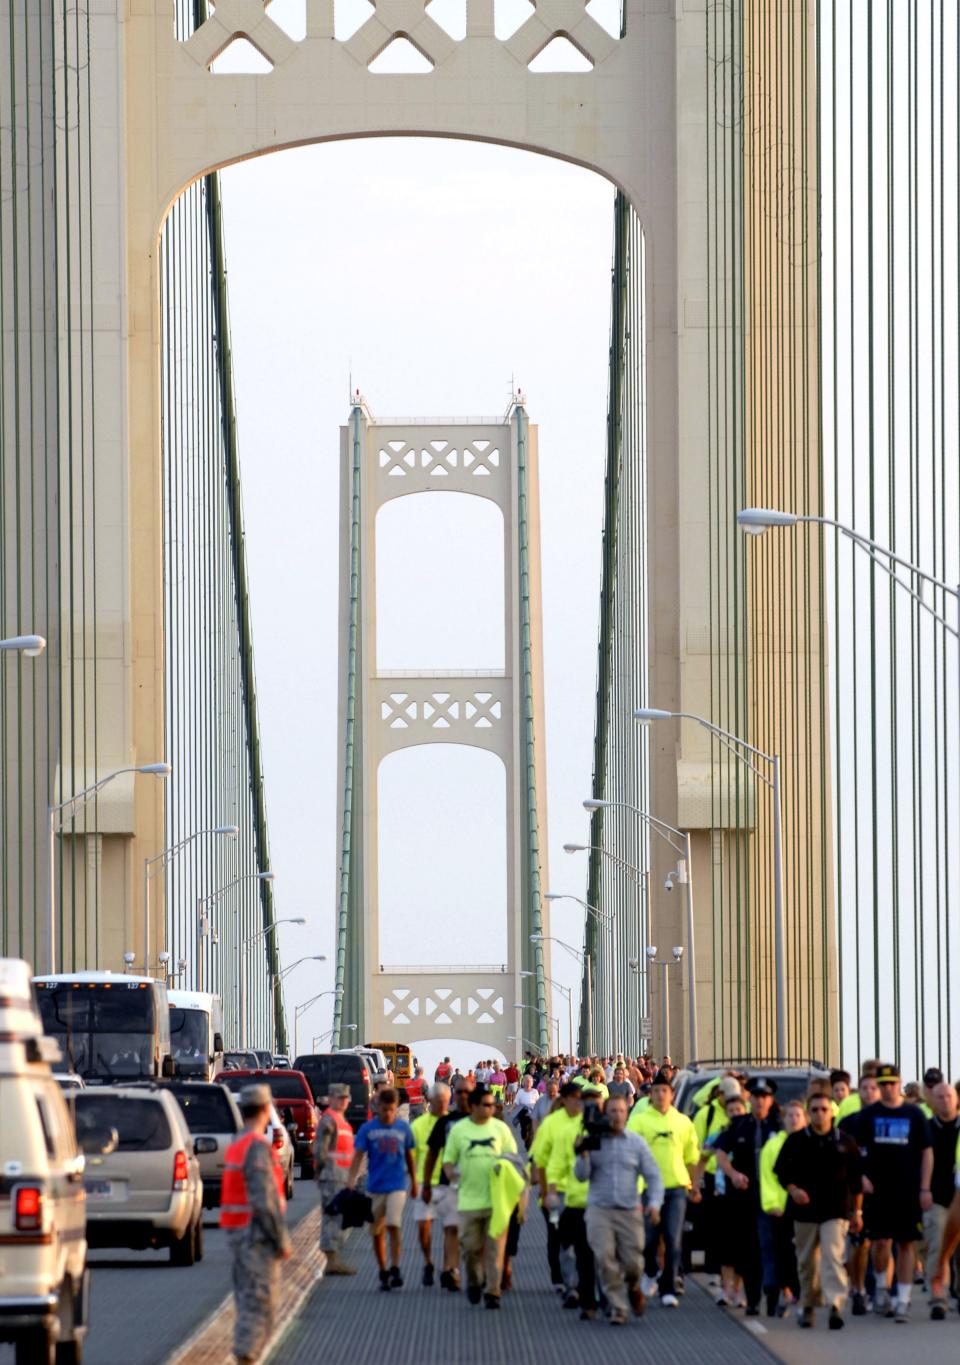 Michigan Gov. Rick Snyder leads the annual Labor Day Mackinac Bridge Walk, Monday, Sept. 3, 2012, across the five-mile span that connect Michigan's upper and lower peninsulas. (AP Photo/John L. Russell)